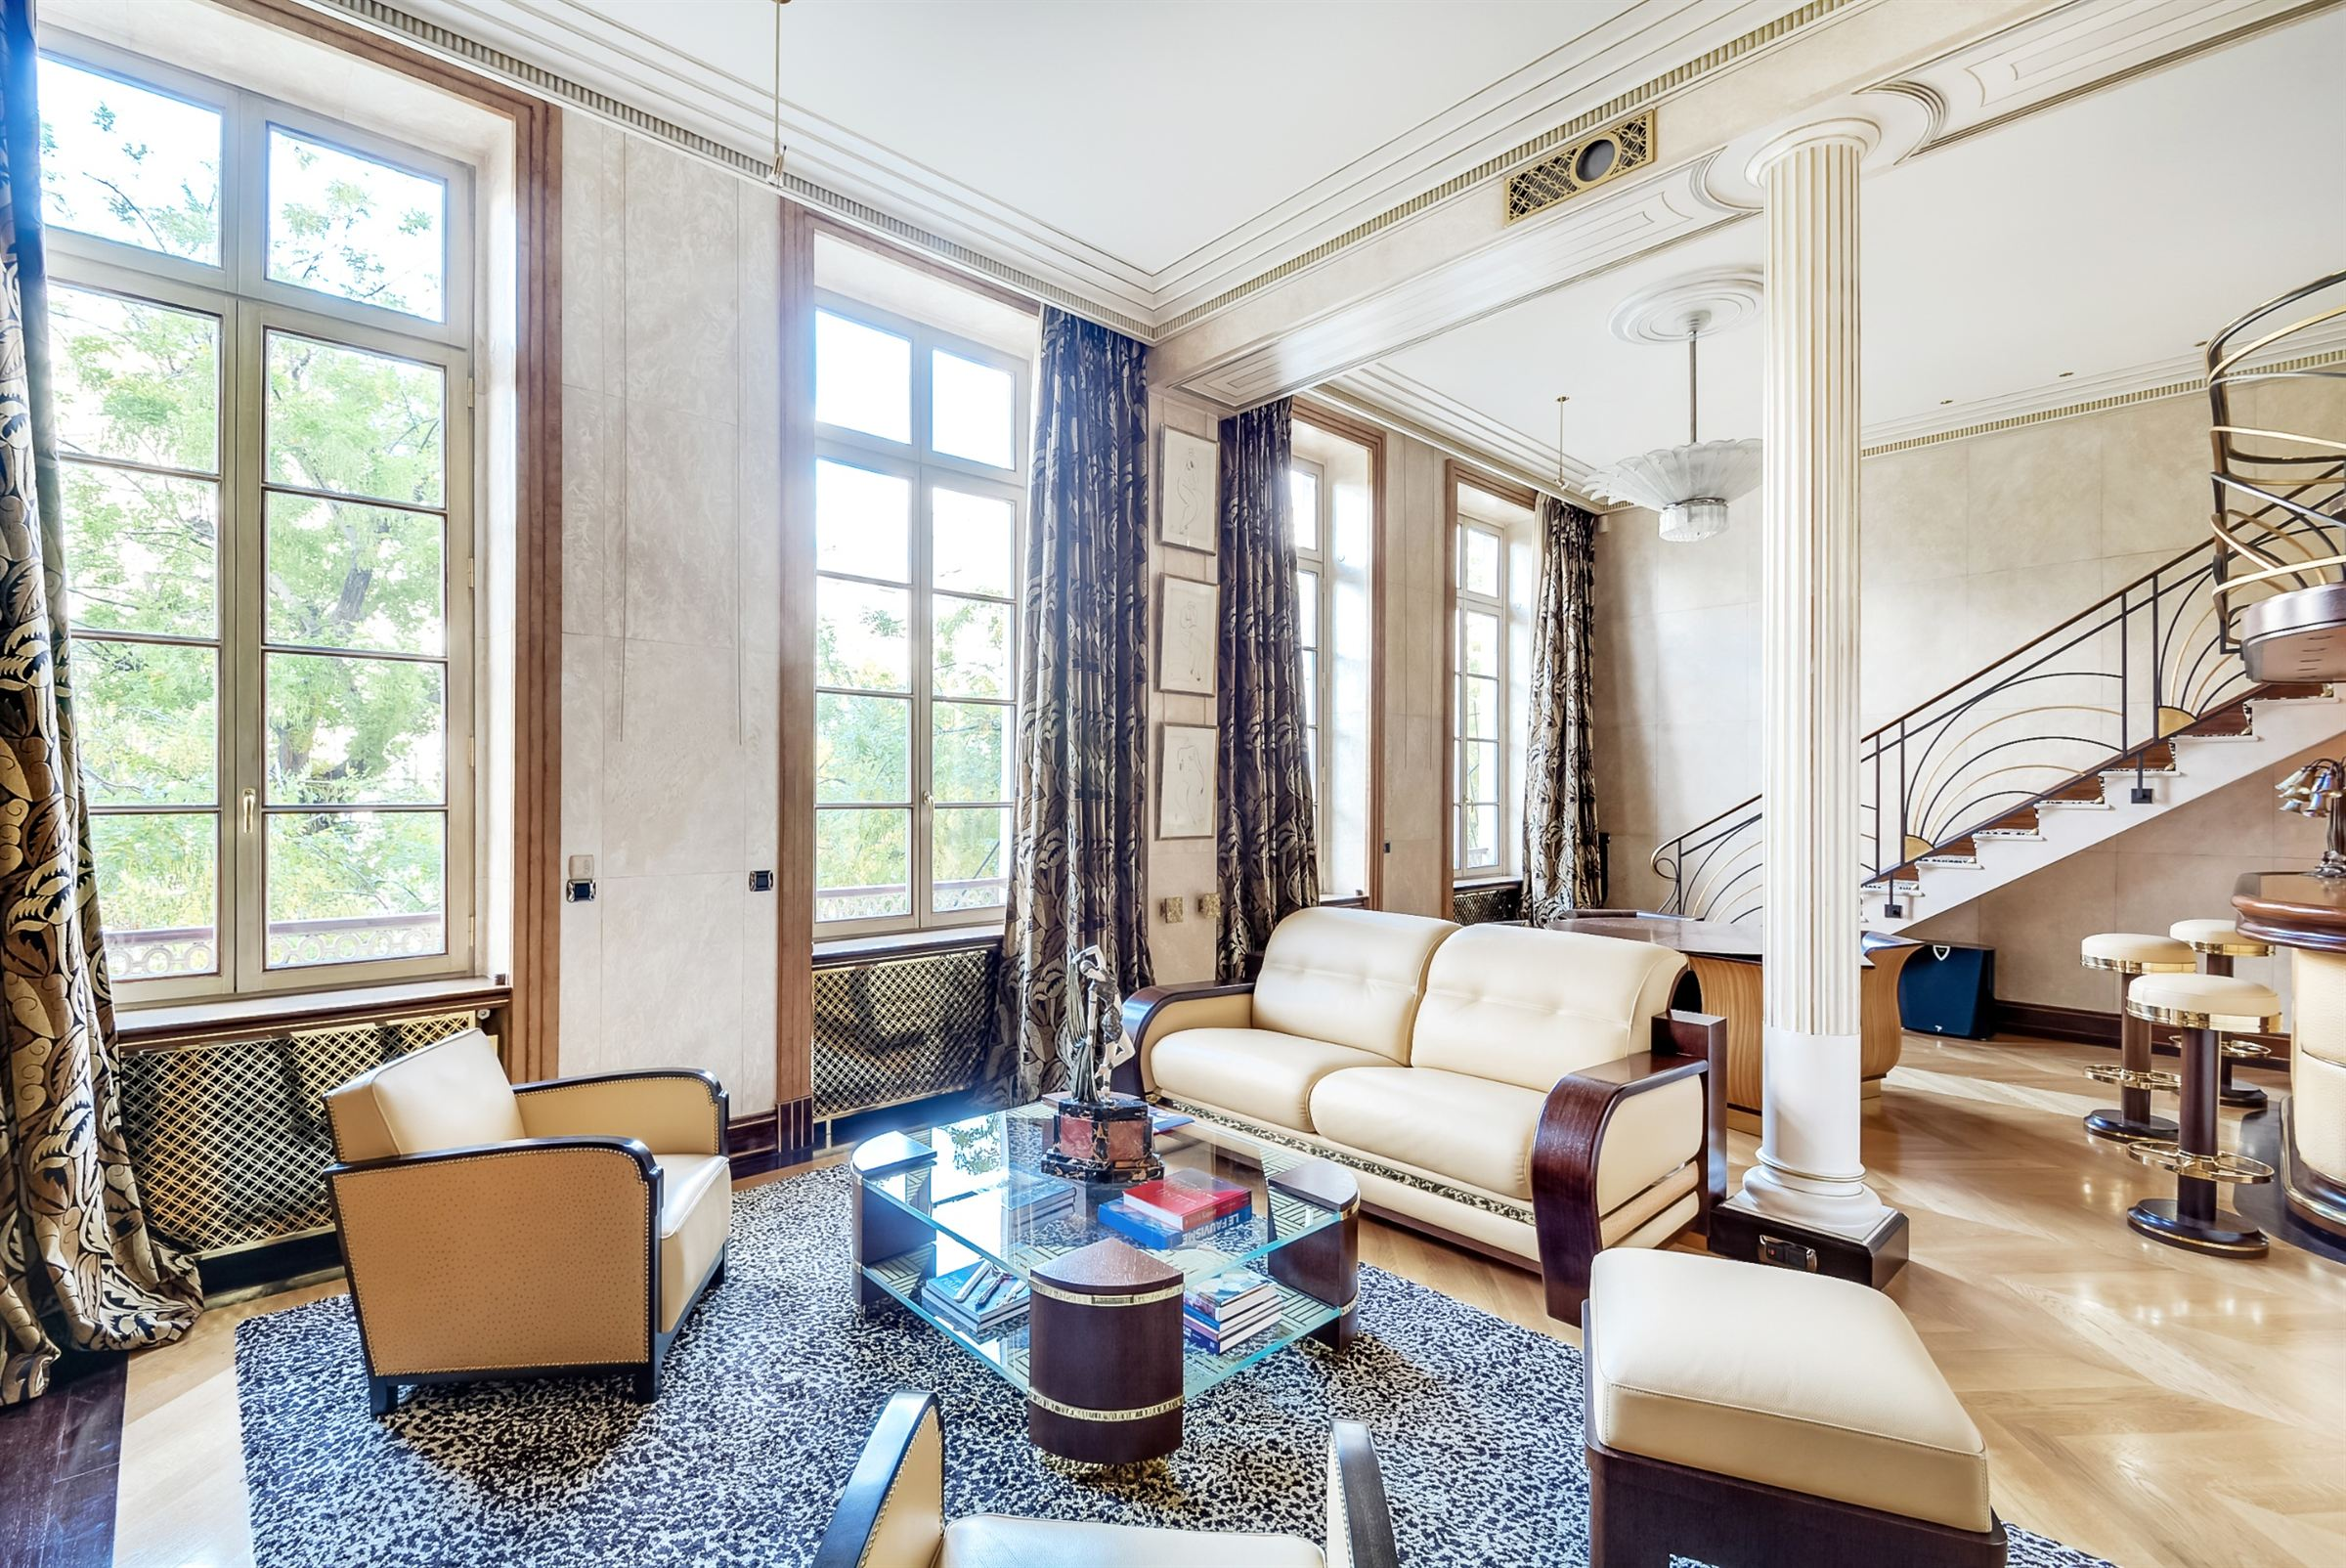 Квартира для того Продажа на Paris 14 - Montparnasse. Luxuruously renovated apartment of 142 sq.m. Unique. Paris, Париж 75014 Франция